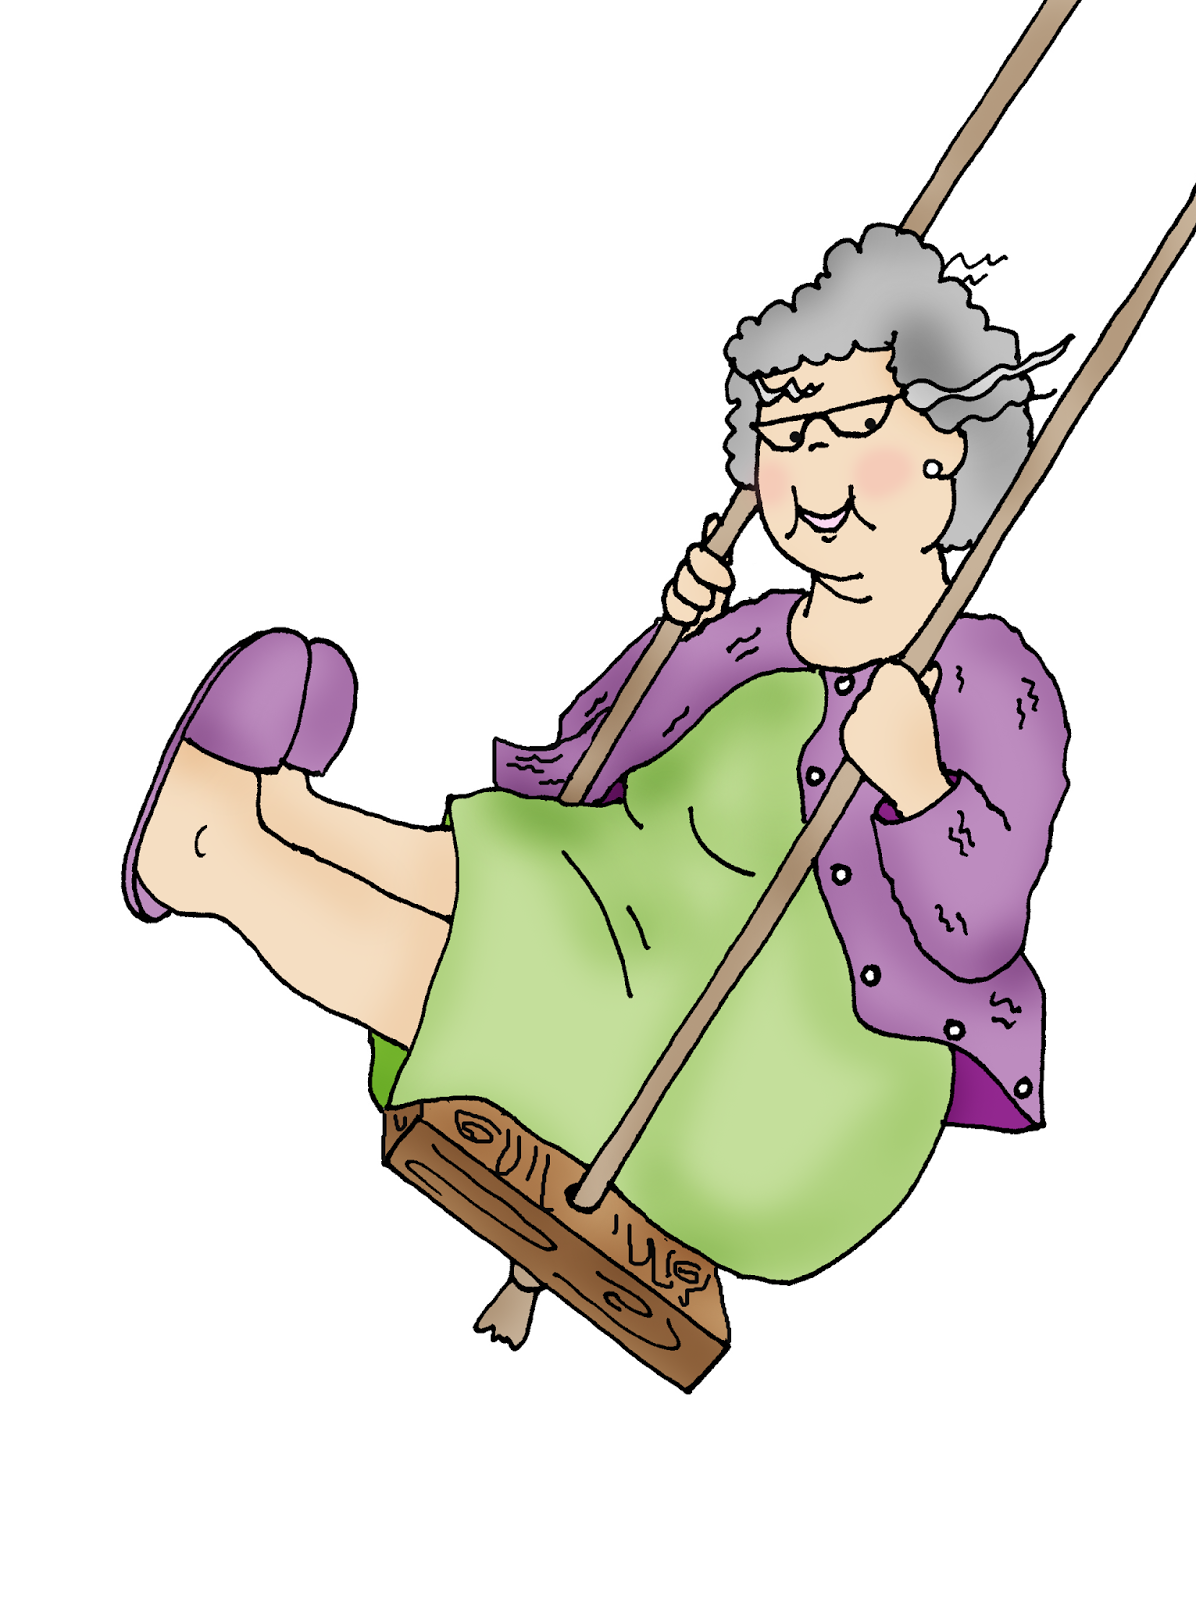 Swingin Granny ... this is a little bit of a do over. I had the perspective wrong on the swing and this is better.